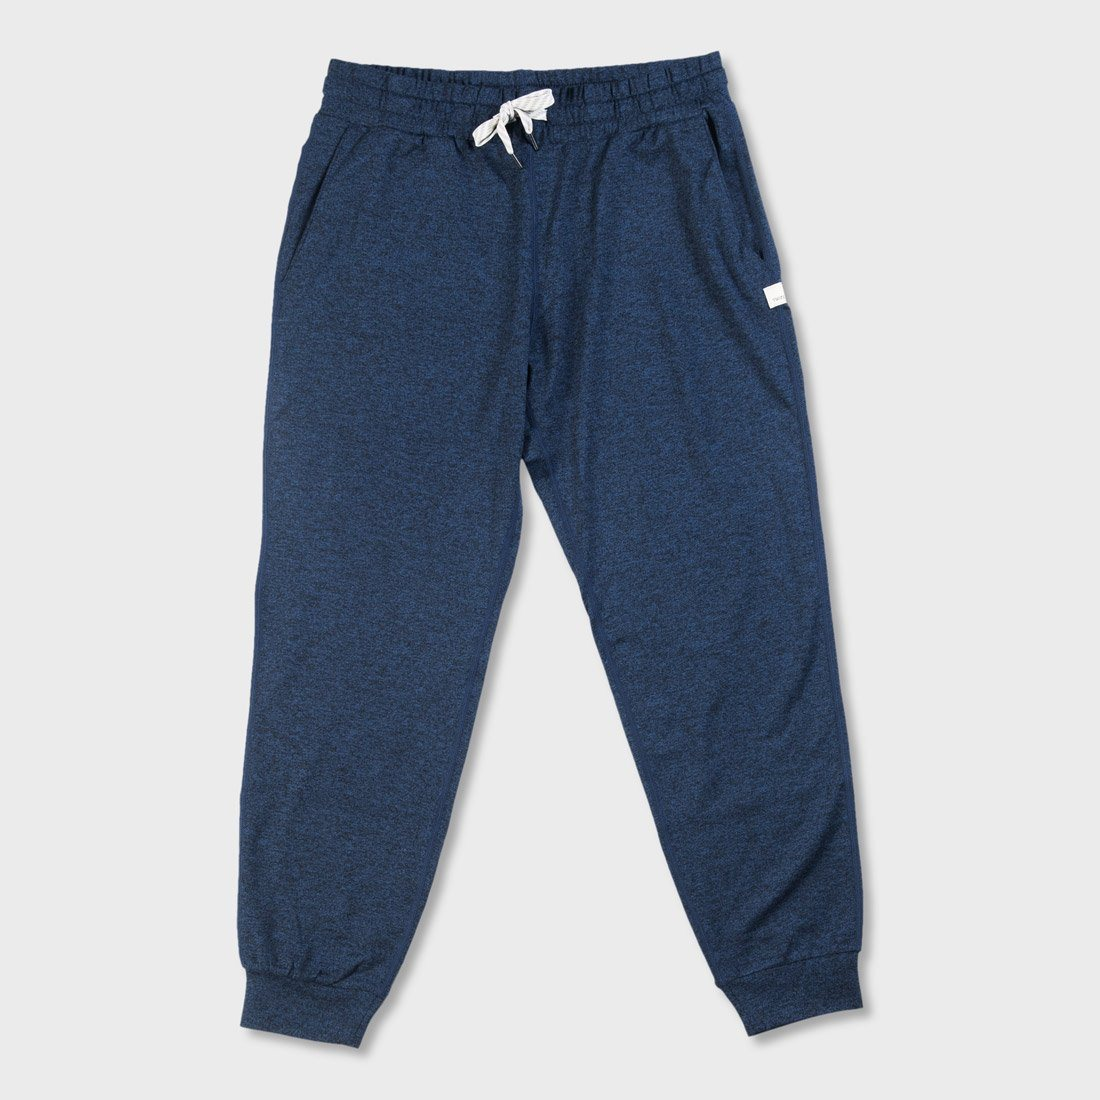 Vuori Women's Performance Jogger Navy Heather